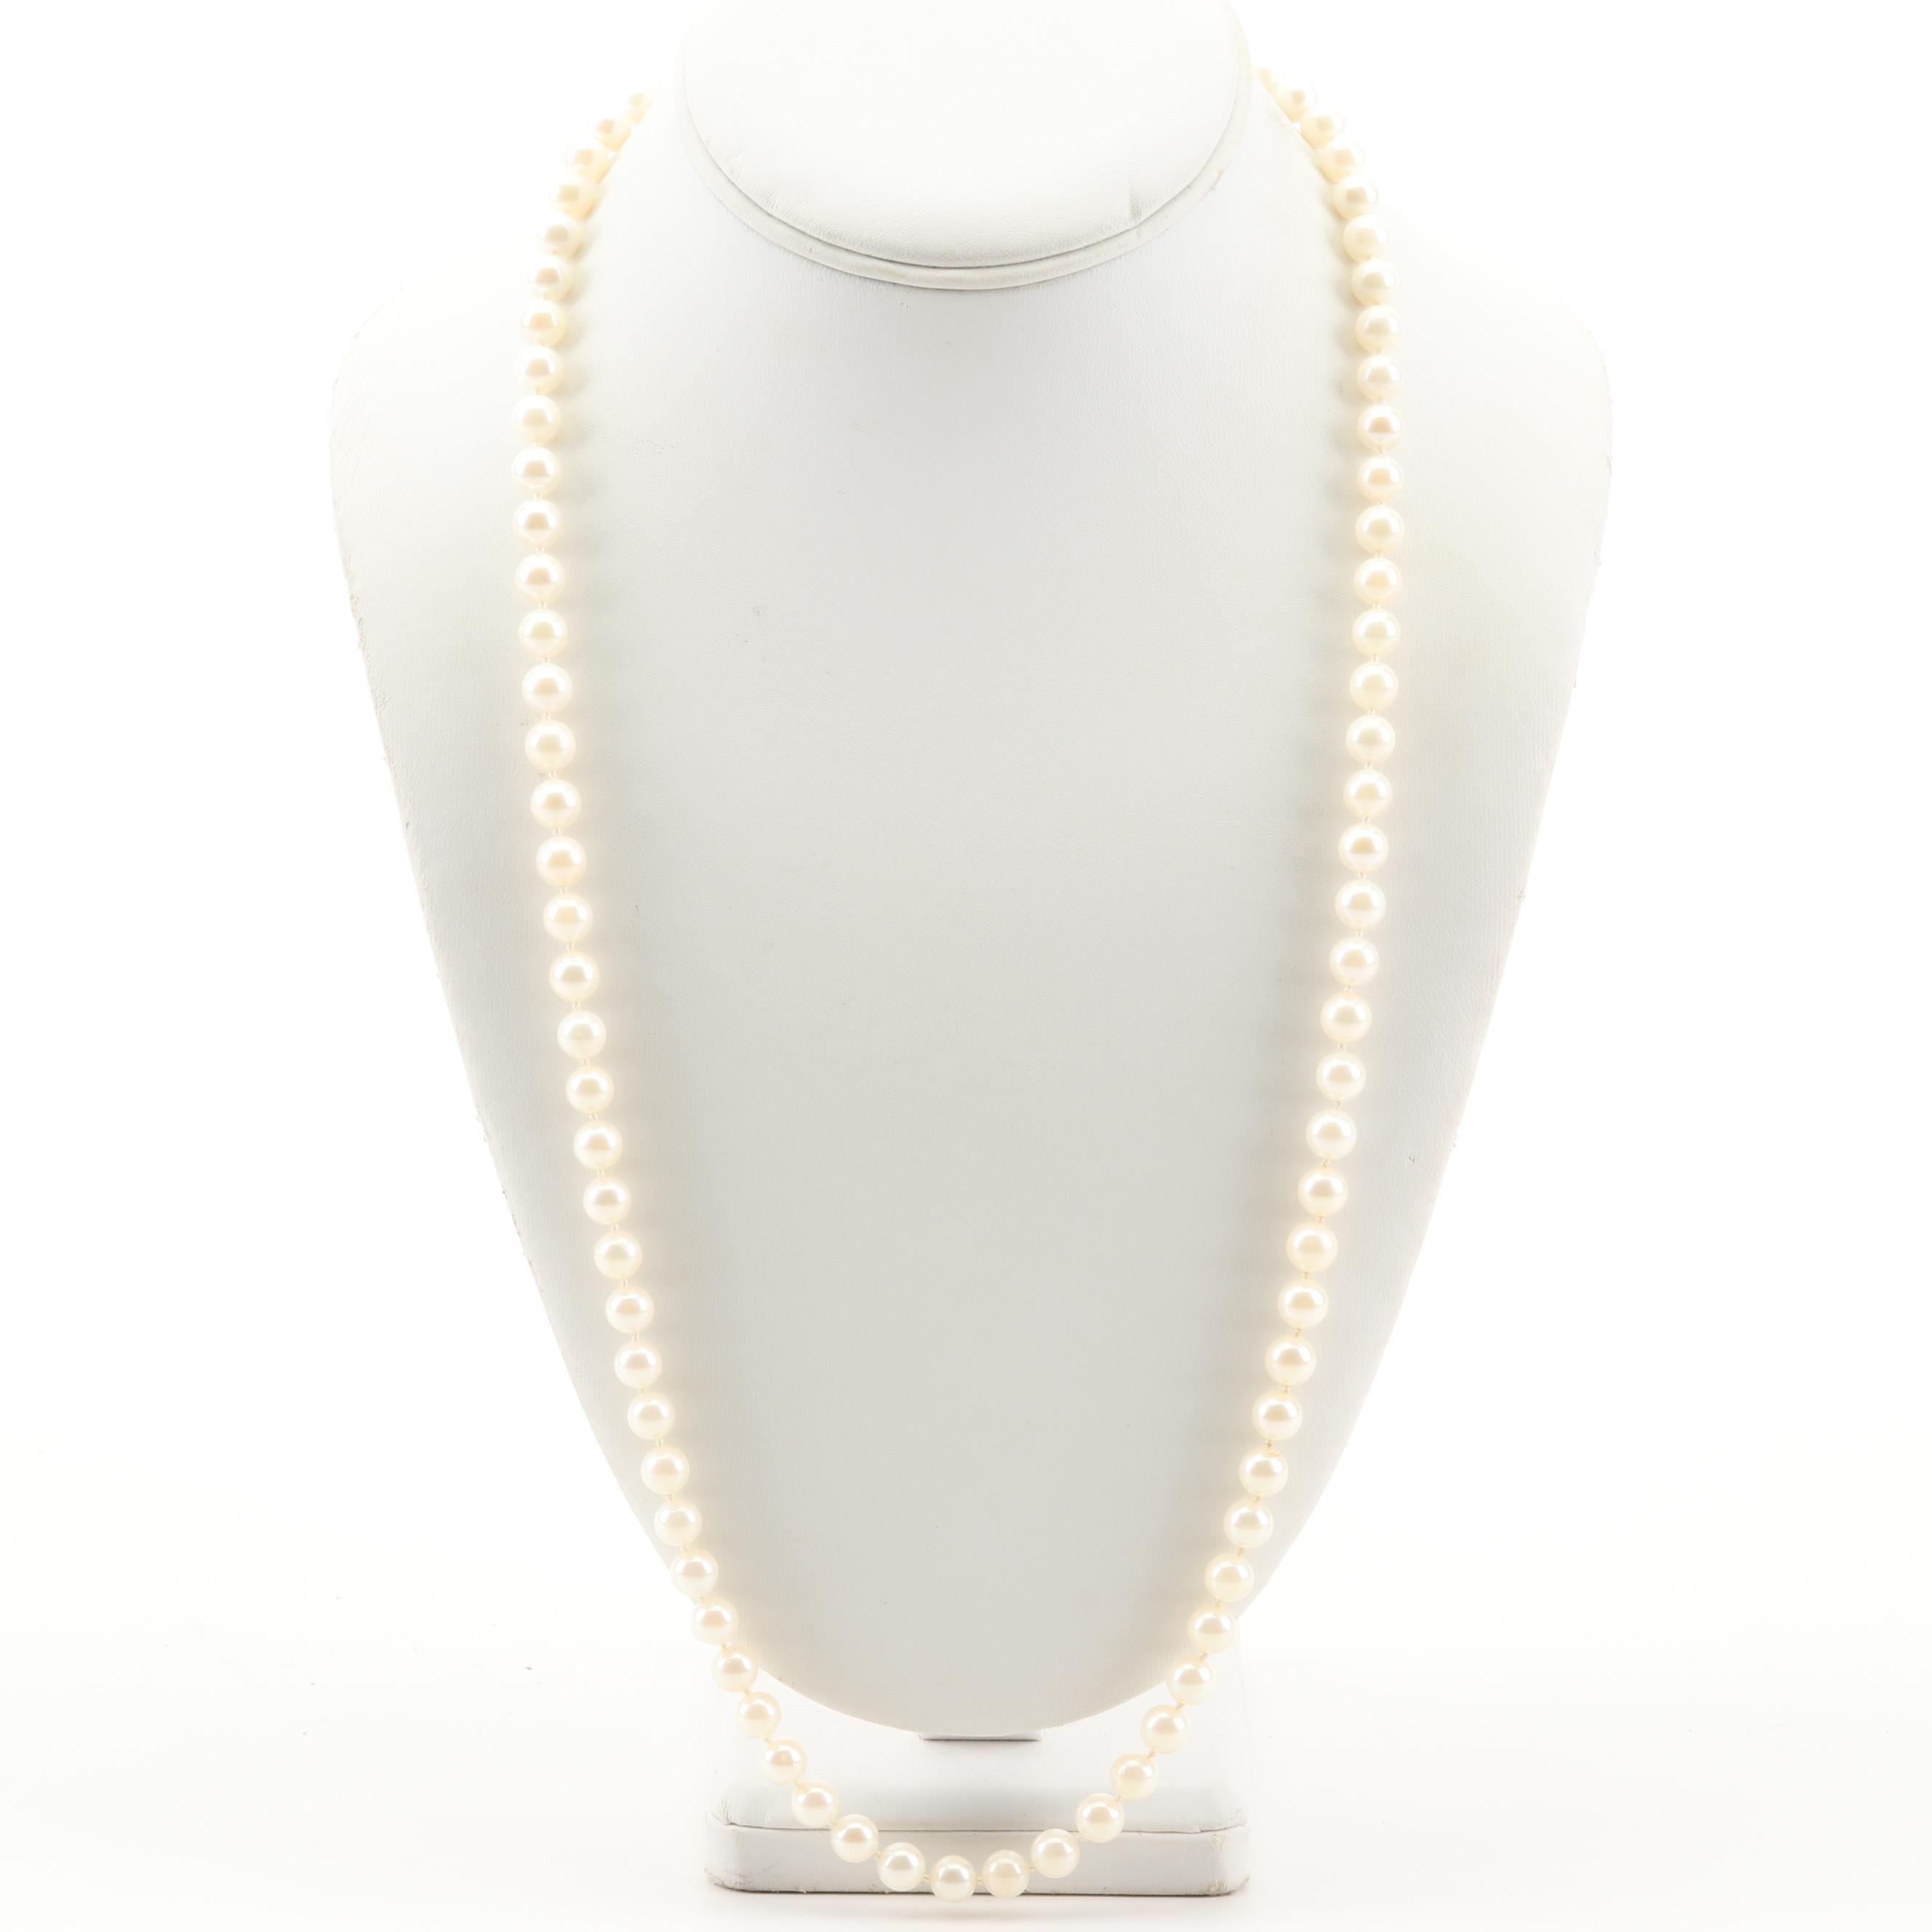 14K Yellow Gold Freshwater Cultured Pearl Necklace